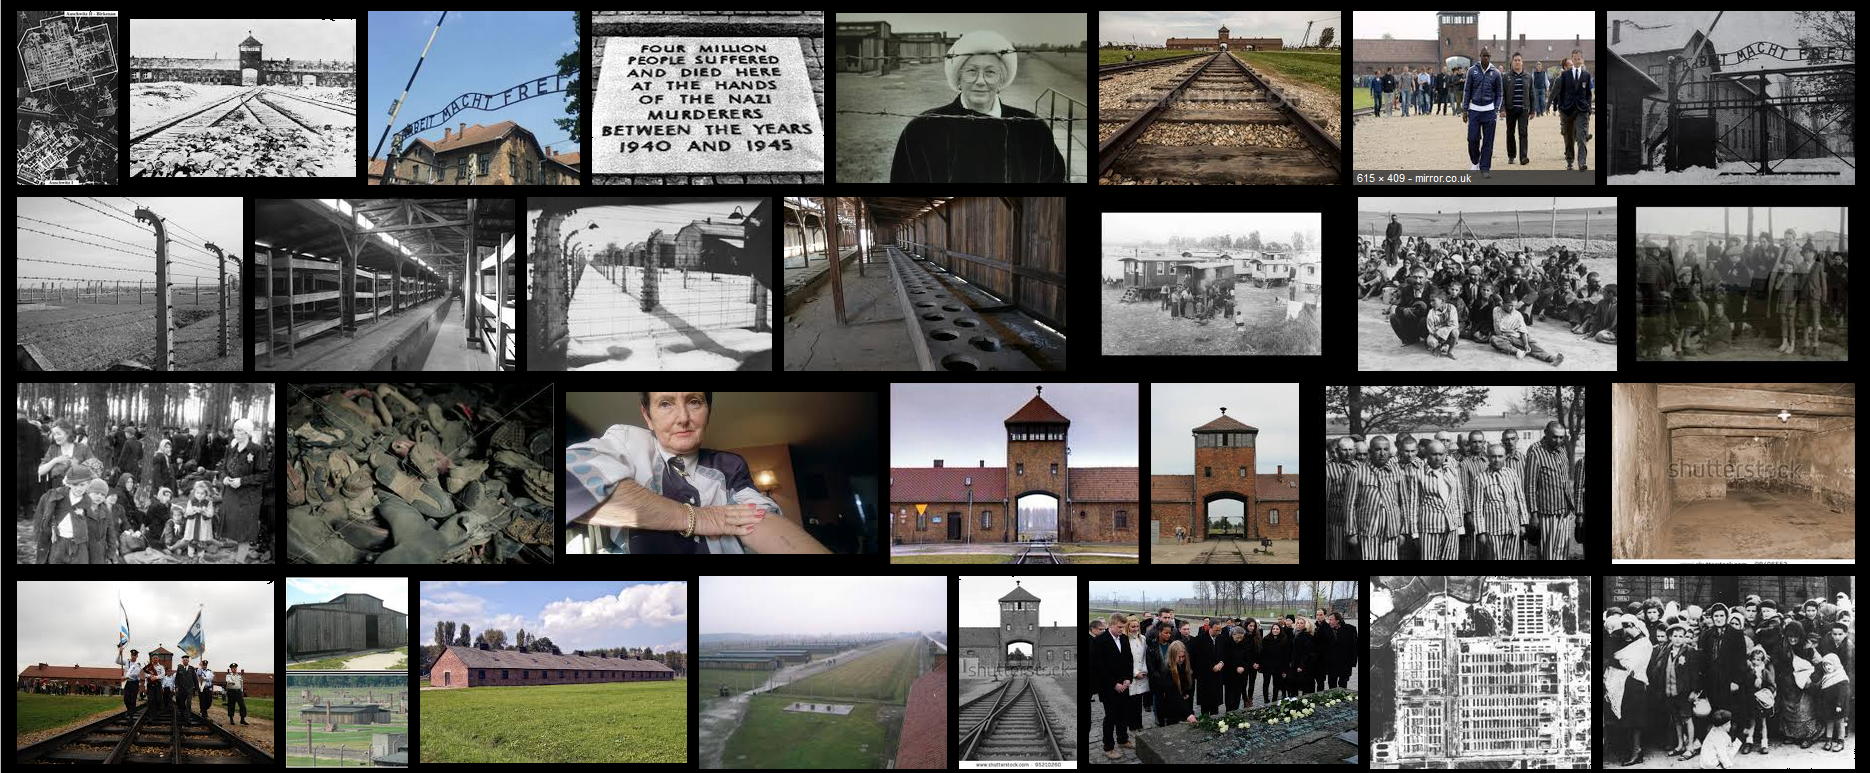 Polish commemoration of the liberation of the concentration and extermination camp Auschwitz-Birkenau